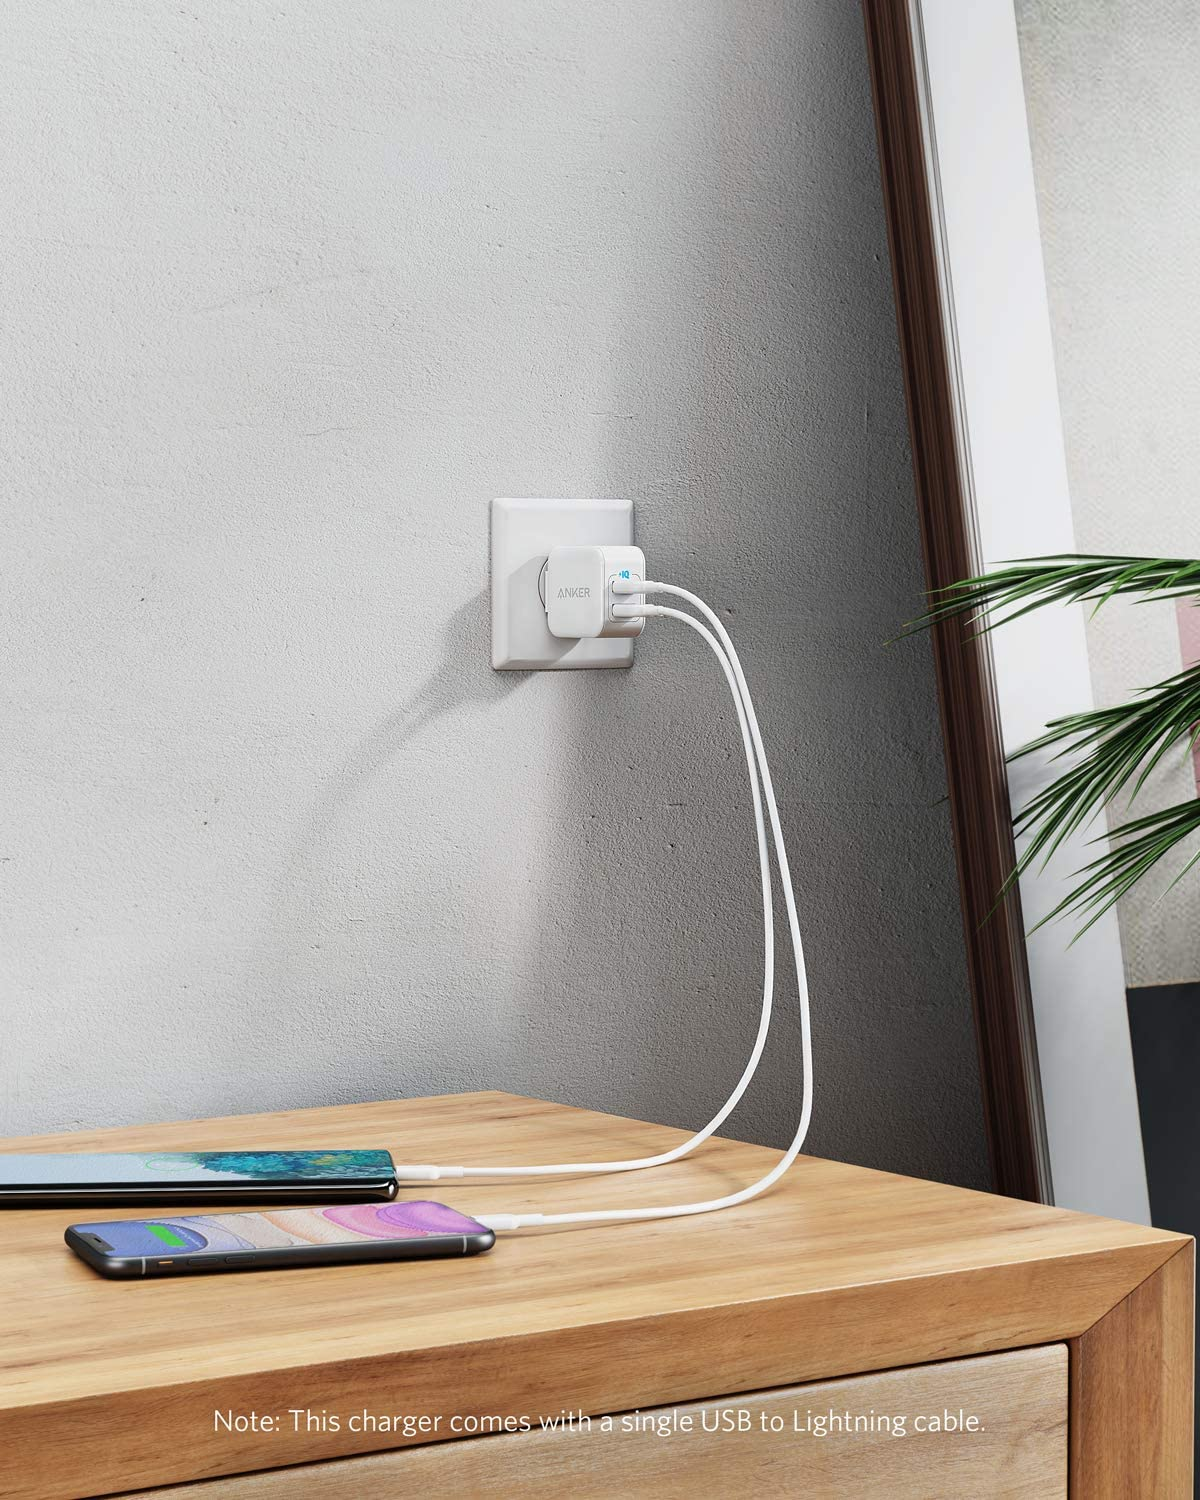 and More iPhone Charger for iPhone Xs//XR// 11//11 Pro//SE 2020// iPad Foldable Plug Anker PowerPort III 2-Port 12W USB Wall Charger with 3ft MFi Certified Lightning Cable